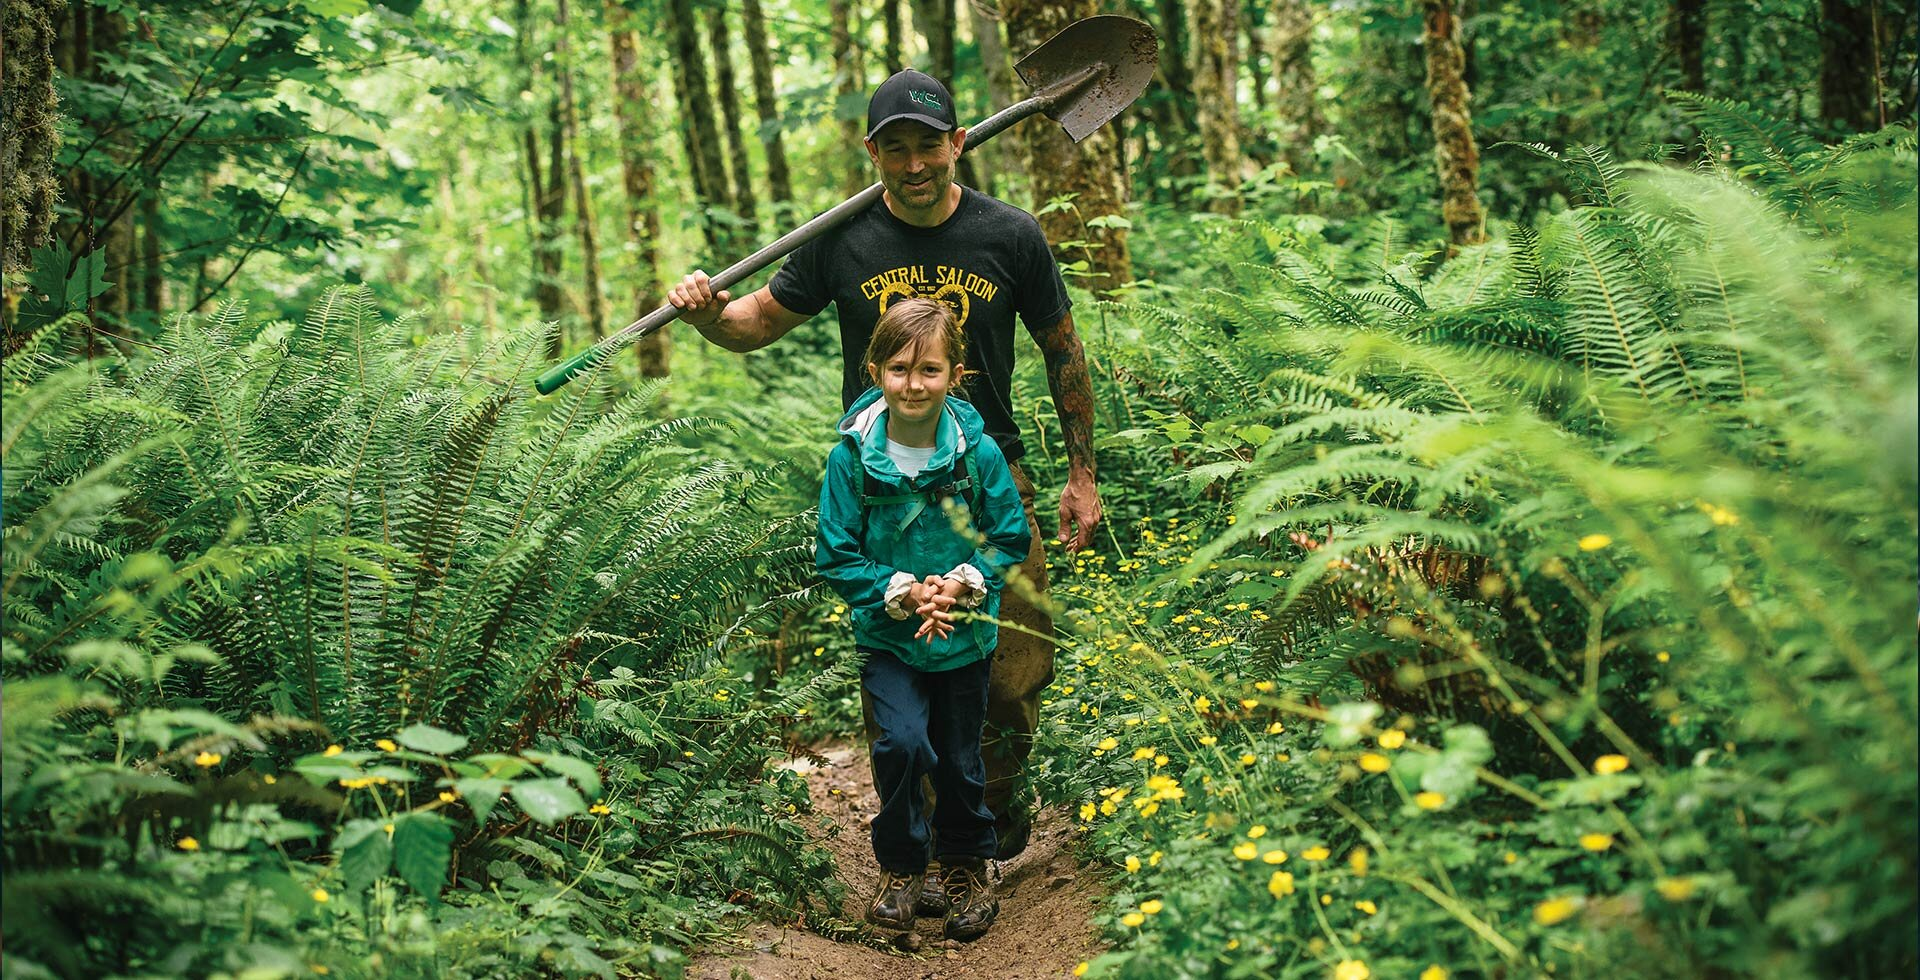 Todd Zimmerman and his daughter Mabel took advantage of closed schools and more time at home last year to bond over building trails together.